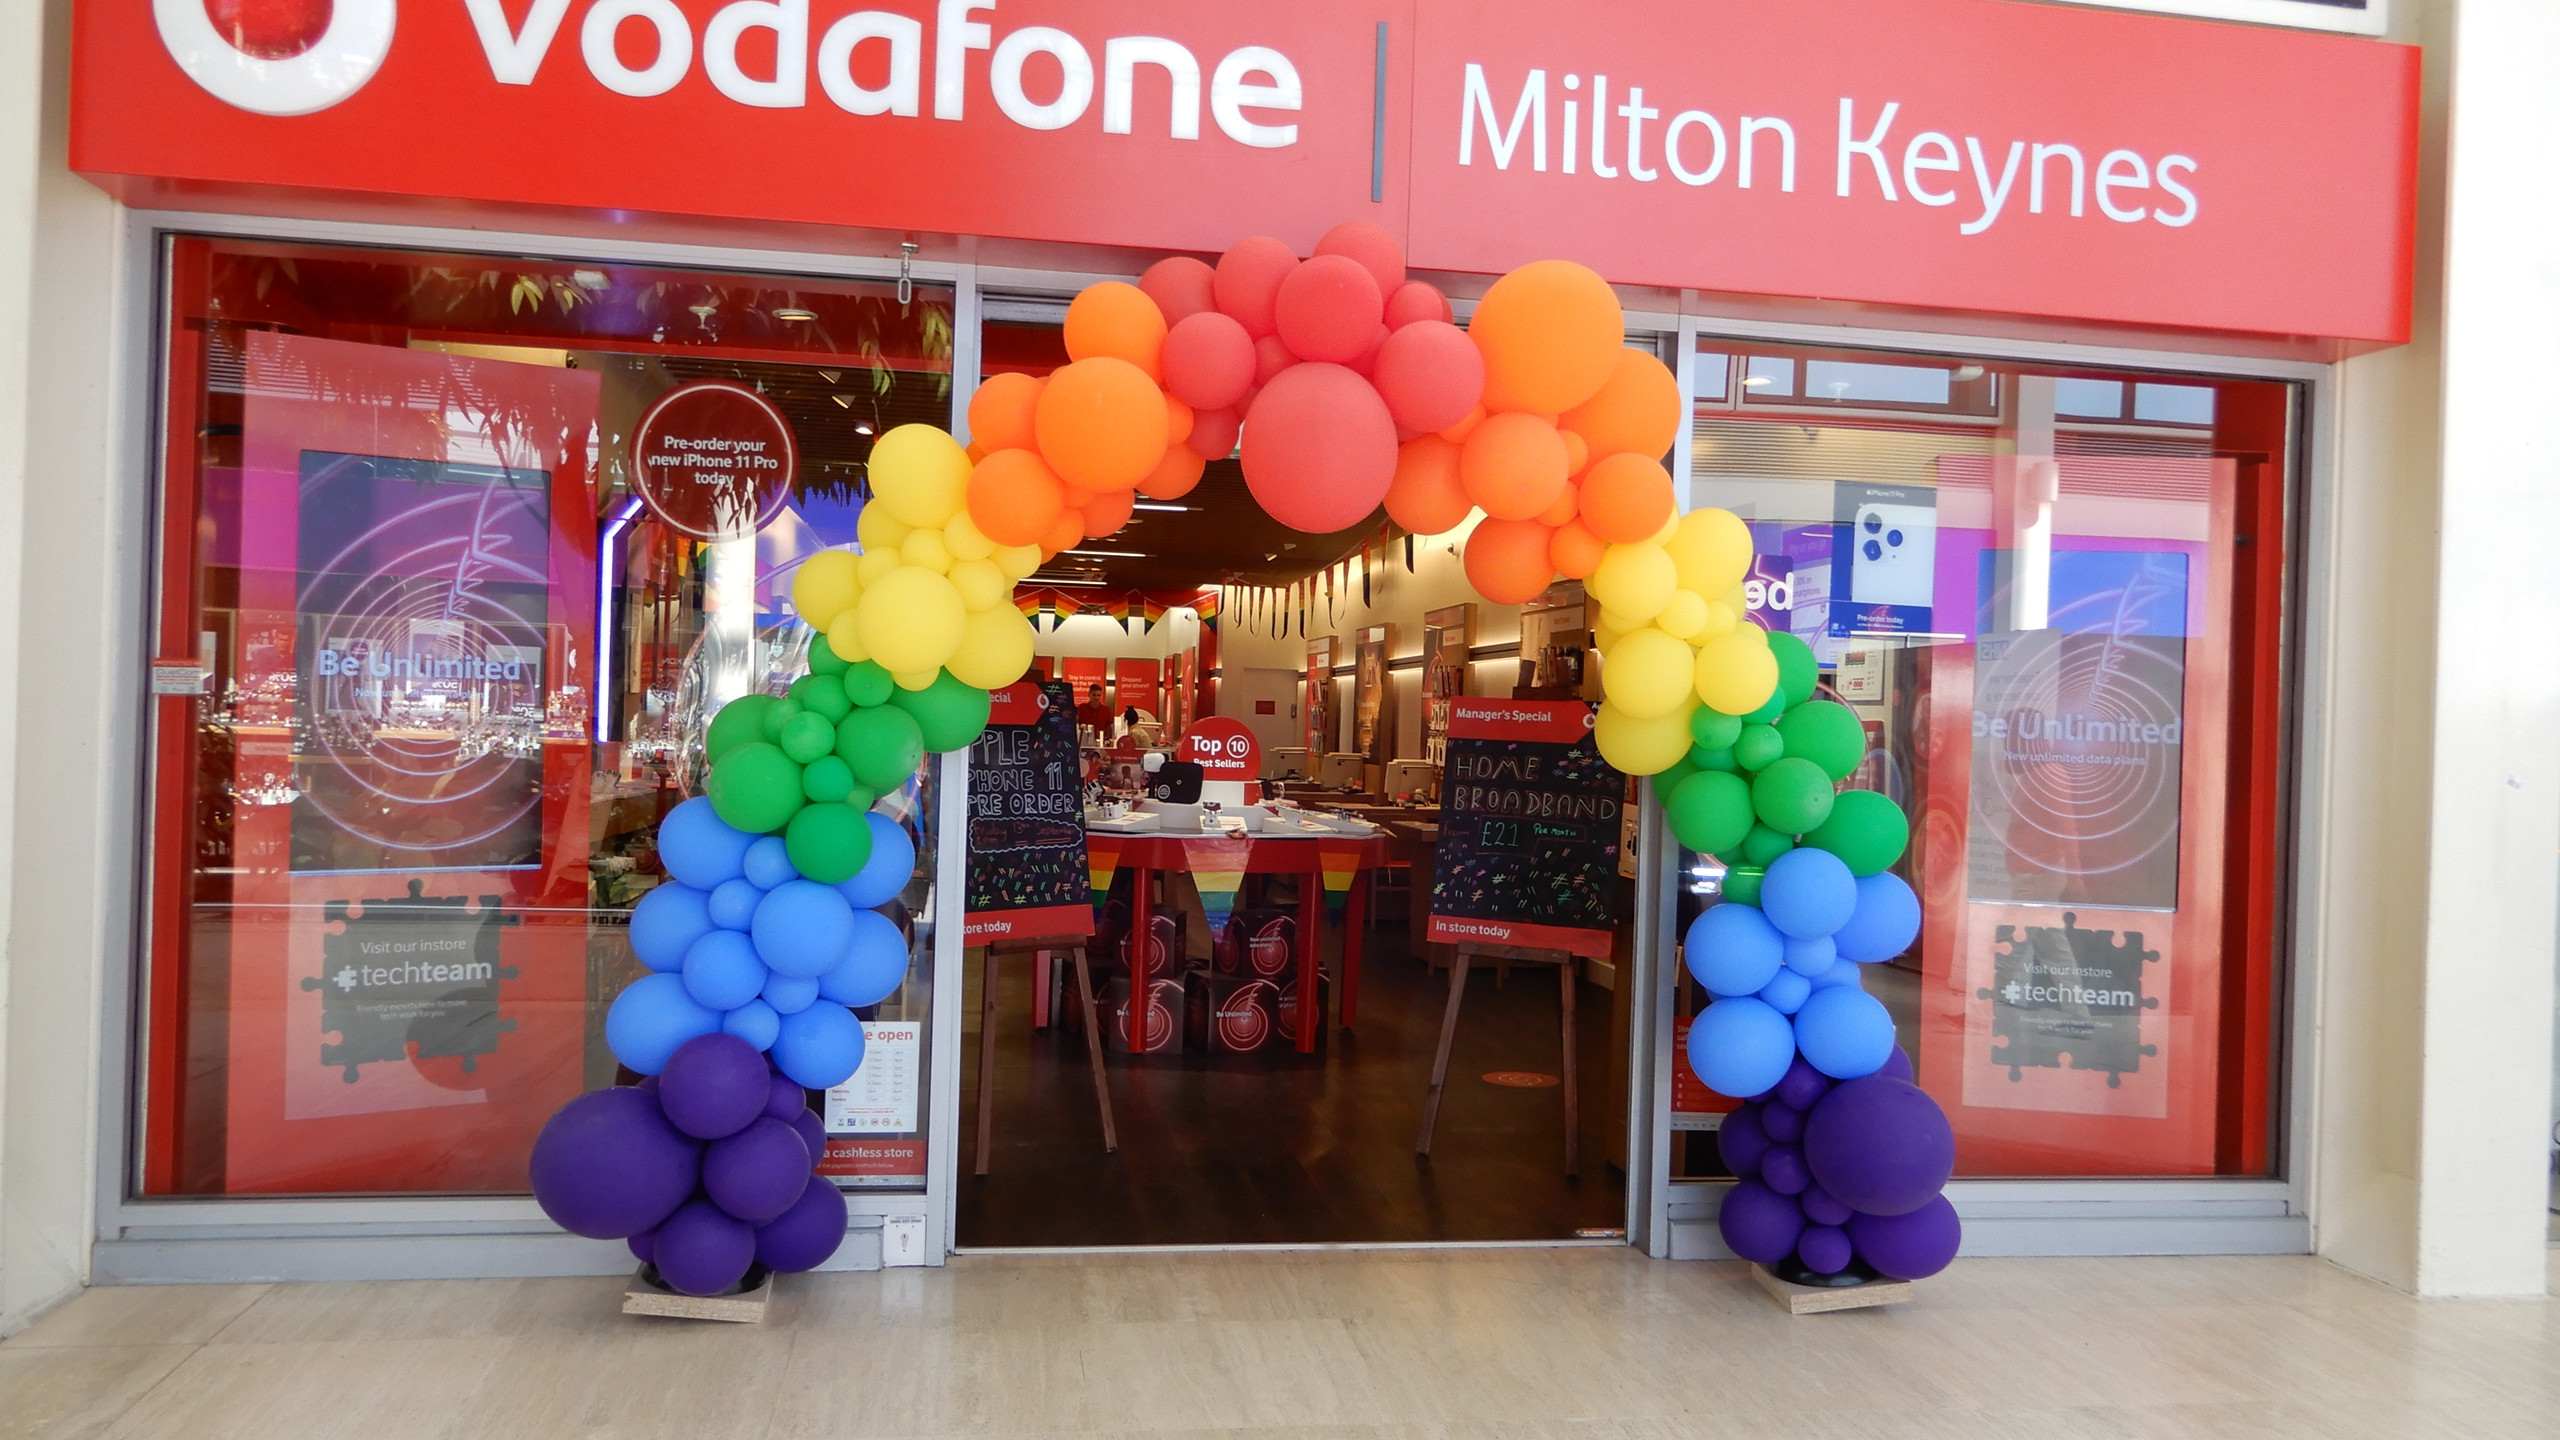 Vodafone supports Pride